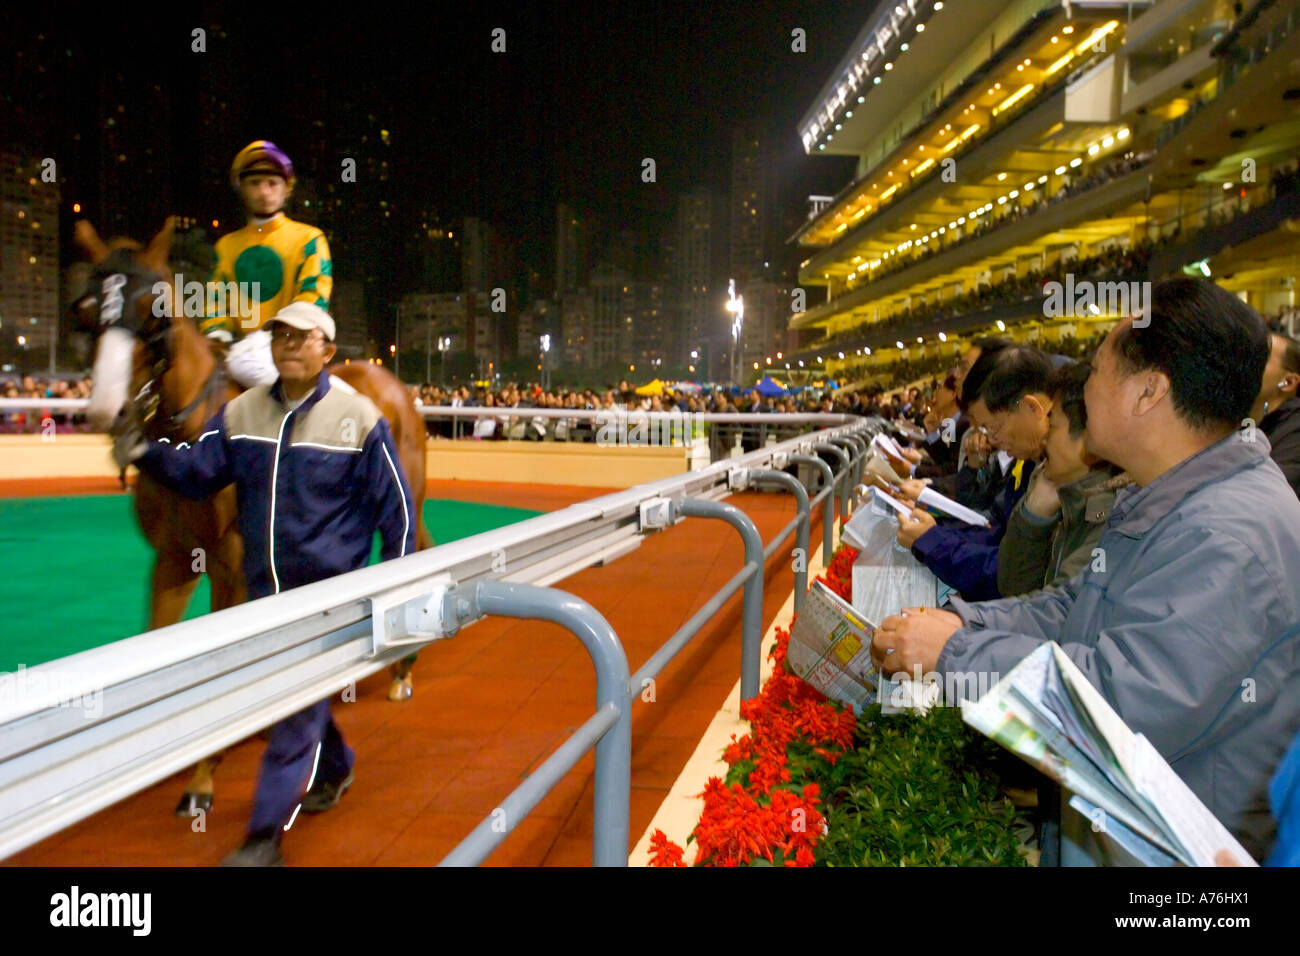 Racehorse and jockey walking around the paddock at the start of the race with the punters looking on. - Stock Image